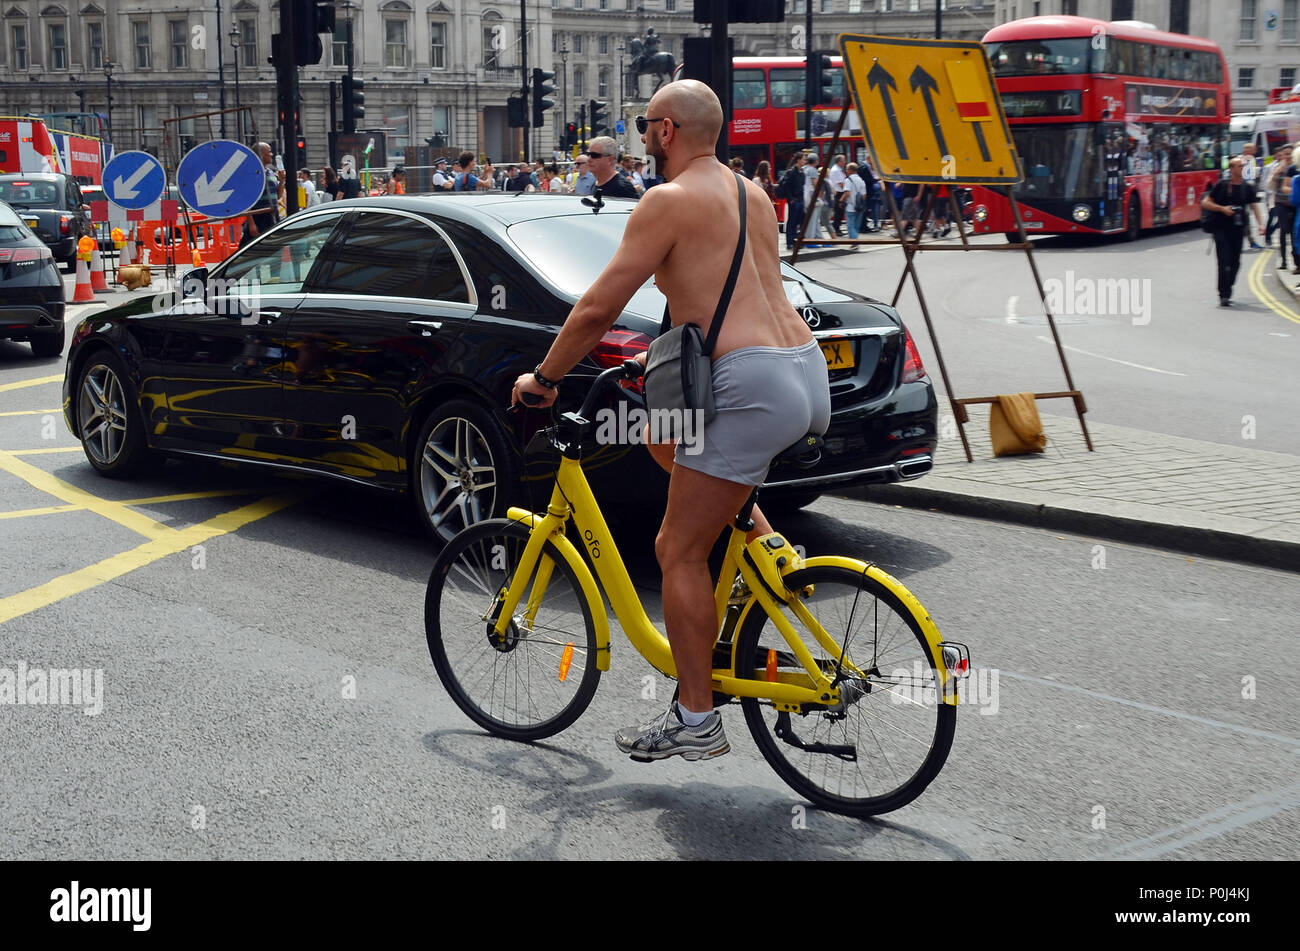 London, UK, 10 June 2018 Sunny Saturday afternoon in Trafalgar Square. Credit: JOHNNY ARMSTEAD/Alamy Live NewsStock Photo